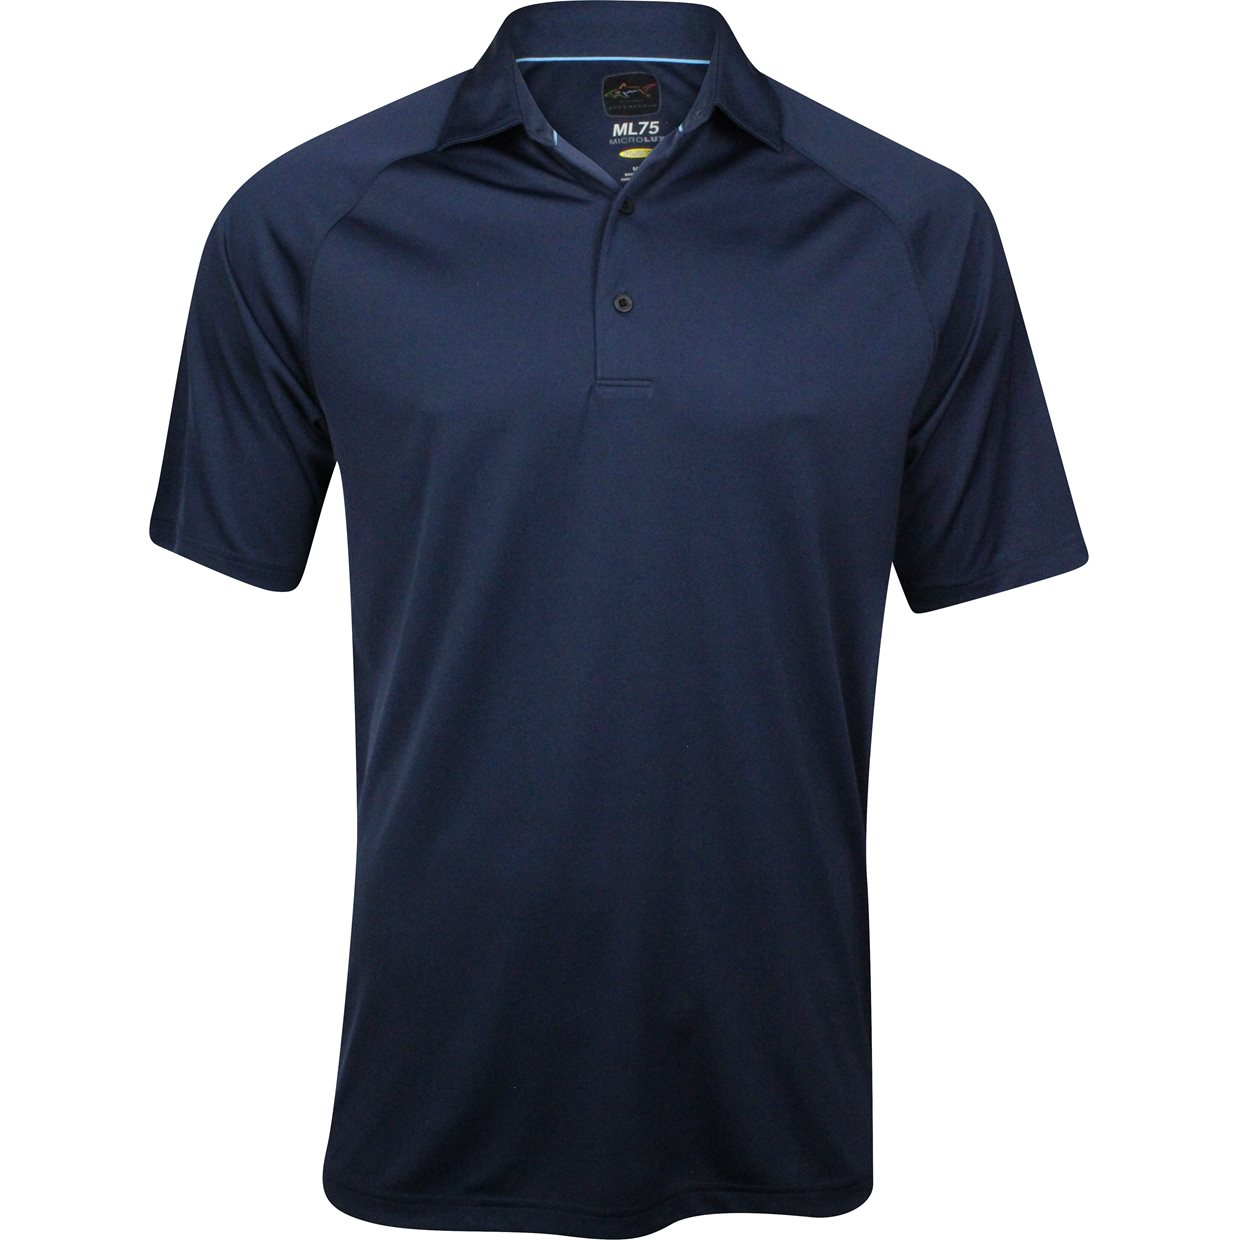 Greg norman ml75 micro lux solid shirt apparel l navy at for Greg norman ml75 shirts